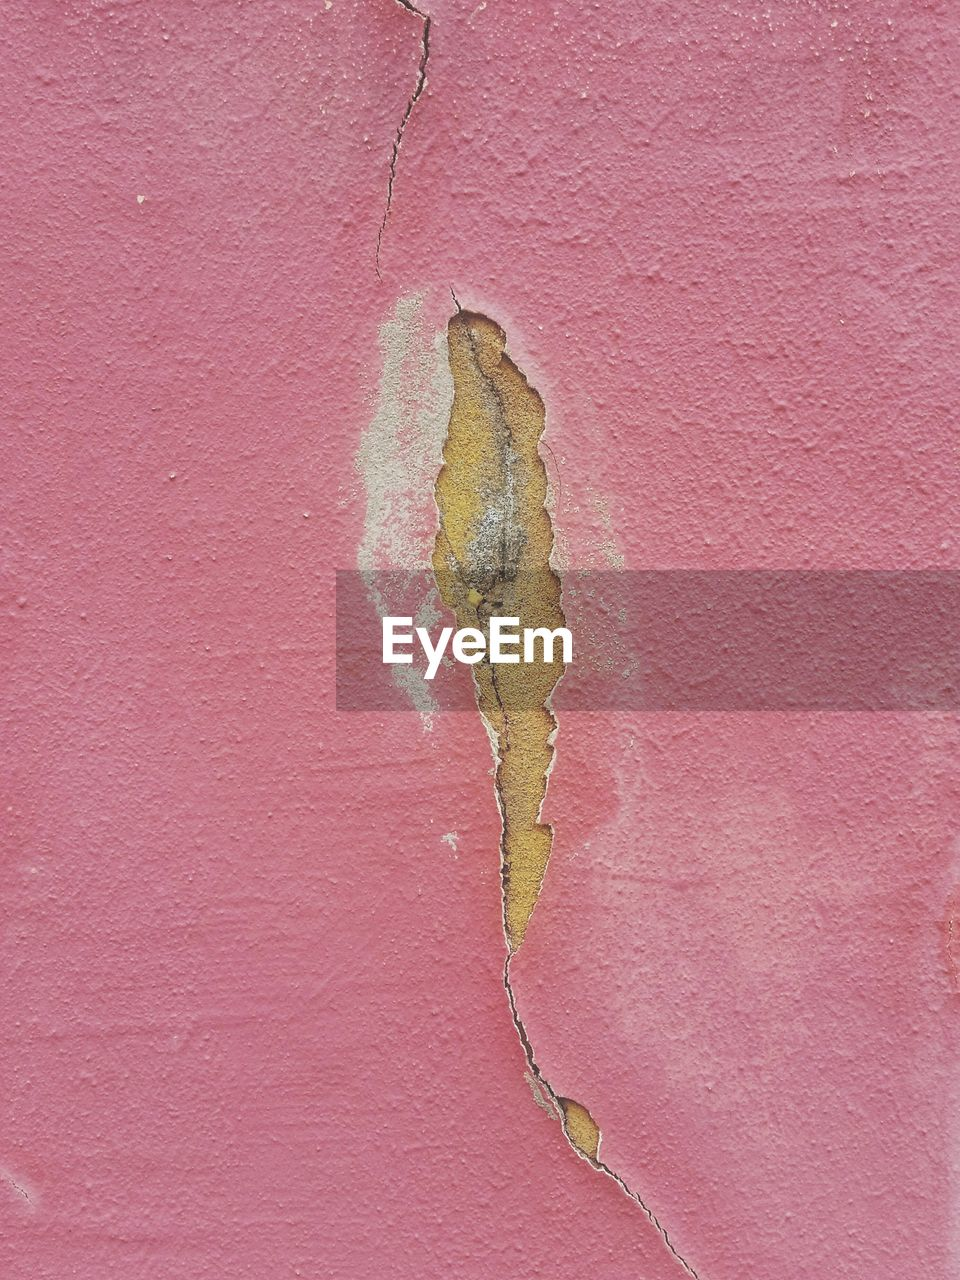 wall - building feature, close-up, pink color, no people, textured, built structure, architecture, day, damaged, full frame, leaf, cracked, plant part, weathered, old, wall, outdoors, backgrounds, nature, rough, deterioration